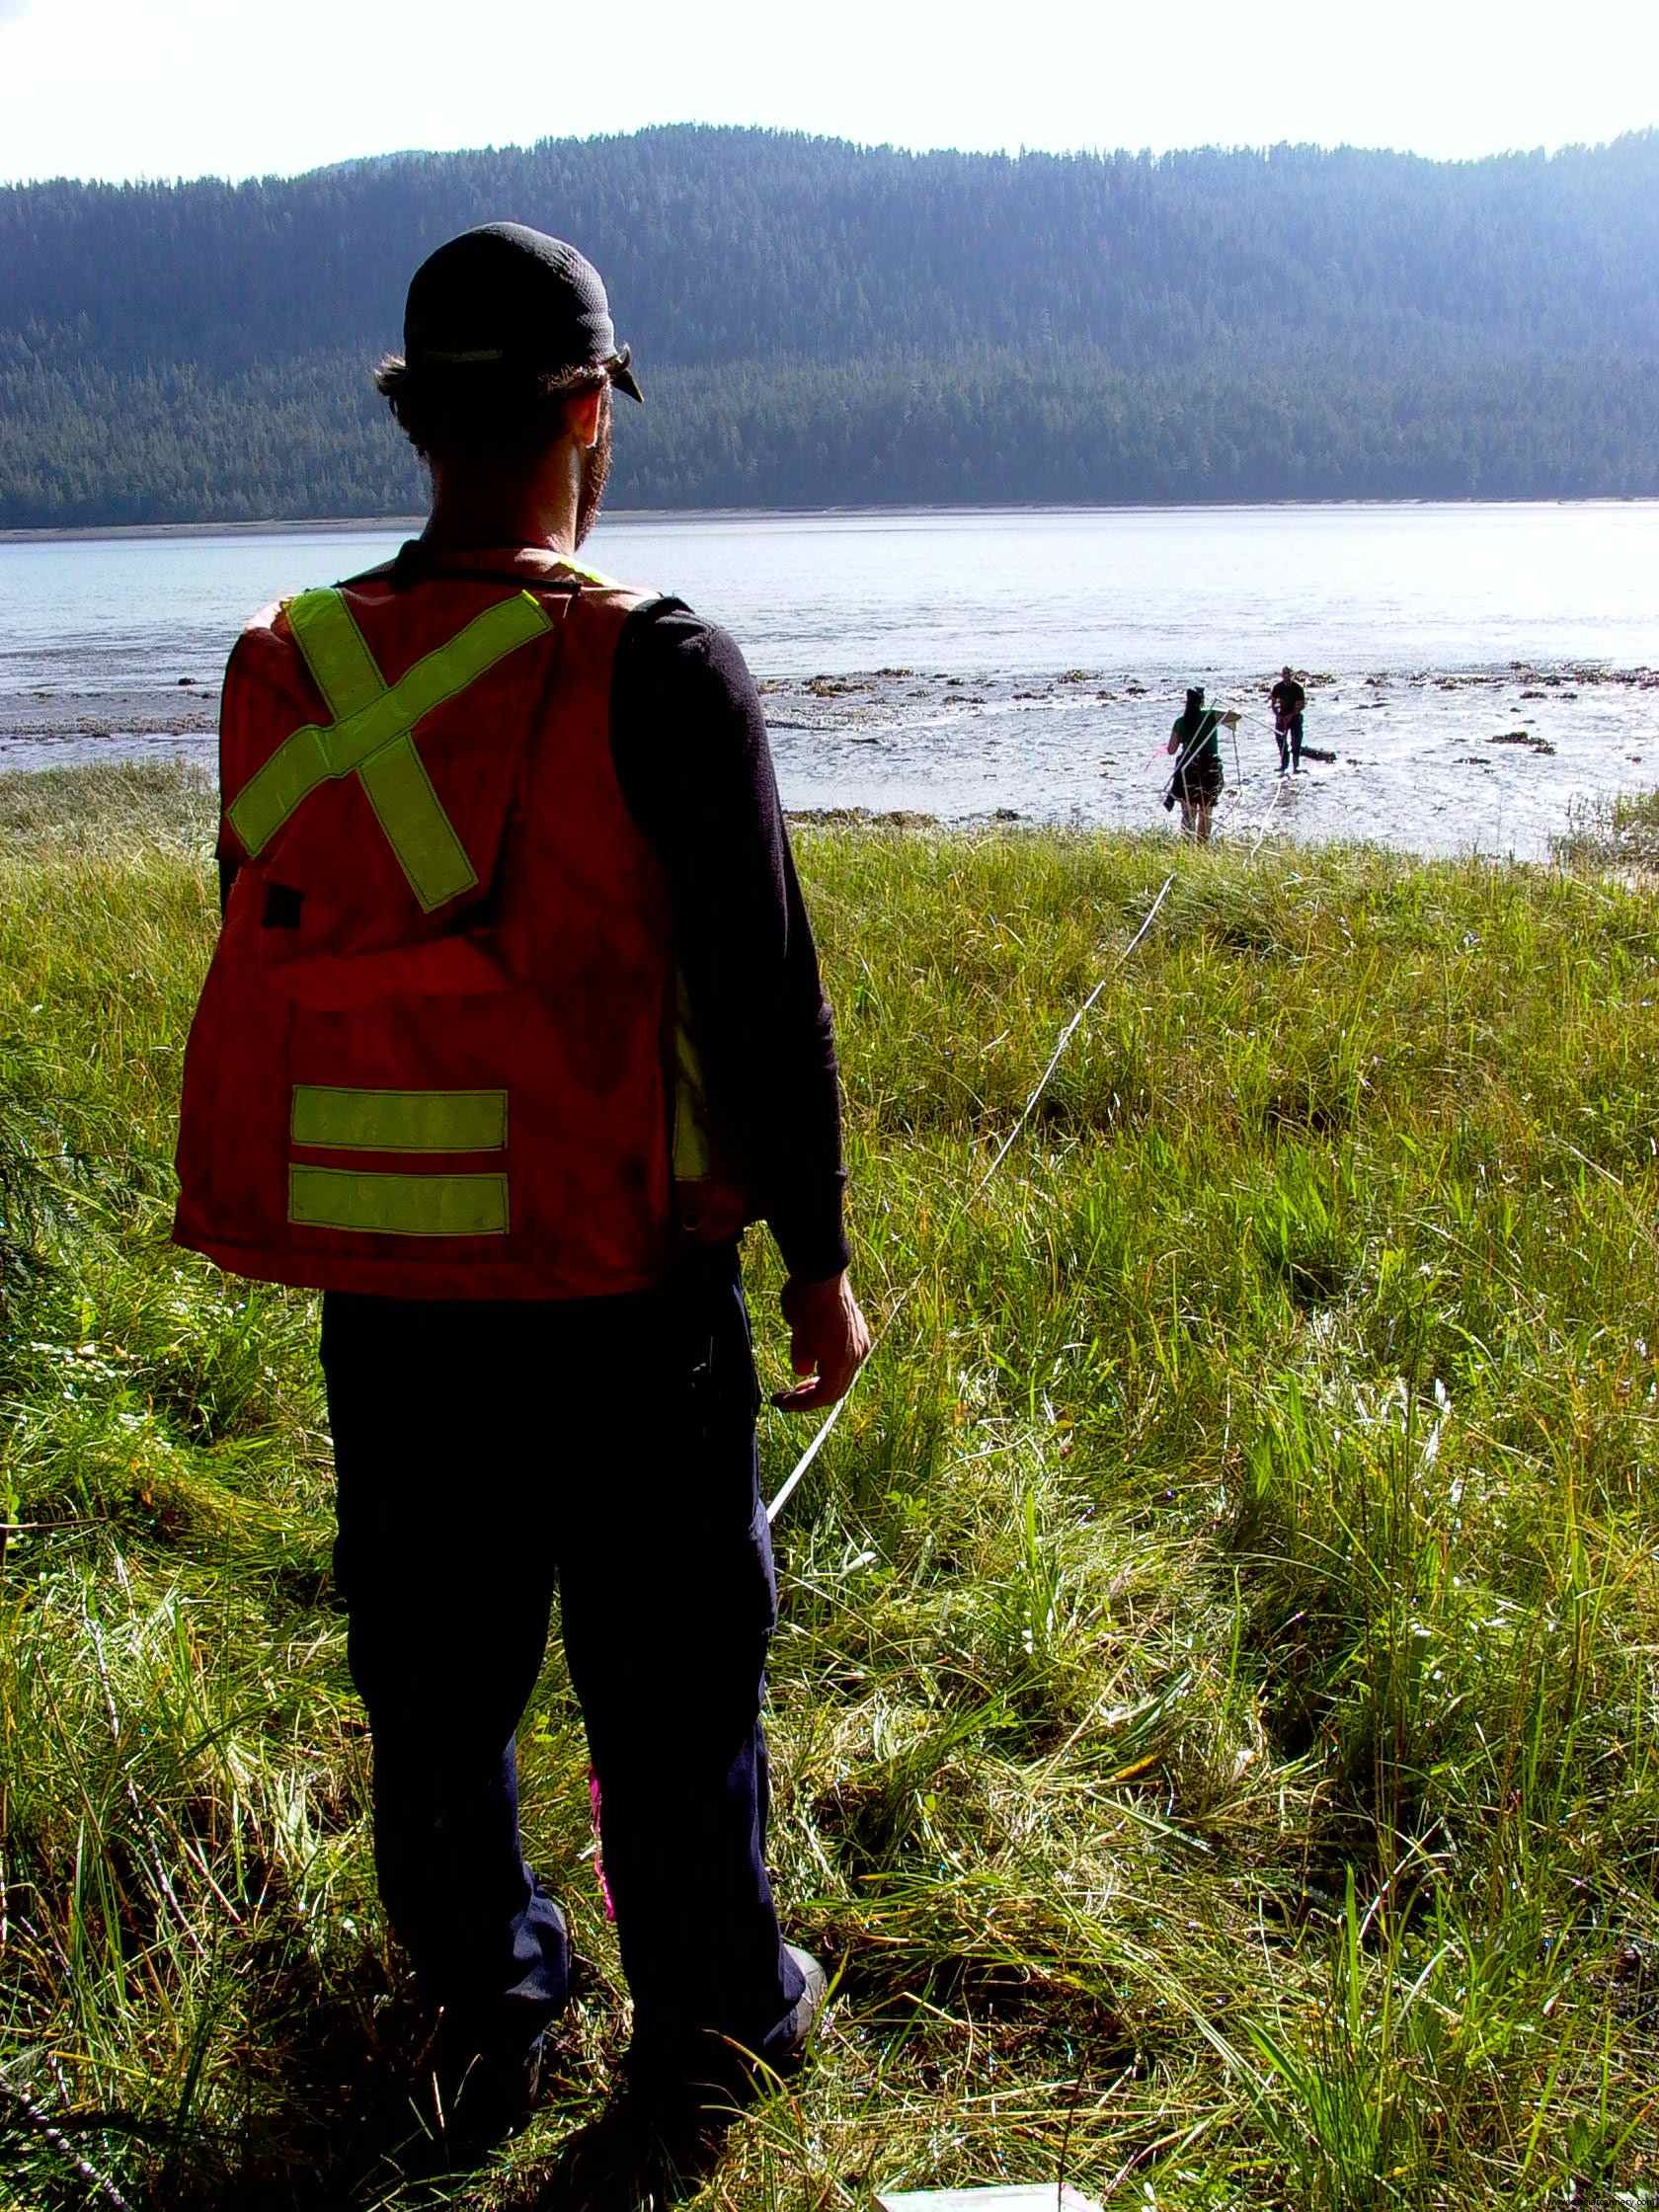 Cassiar Cannery - starting to set up the transsections from the tree line to the mud flats